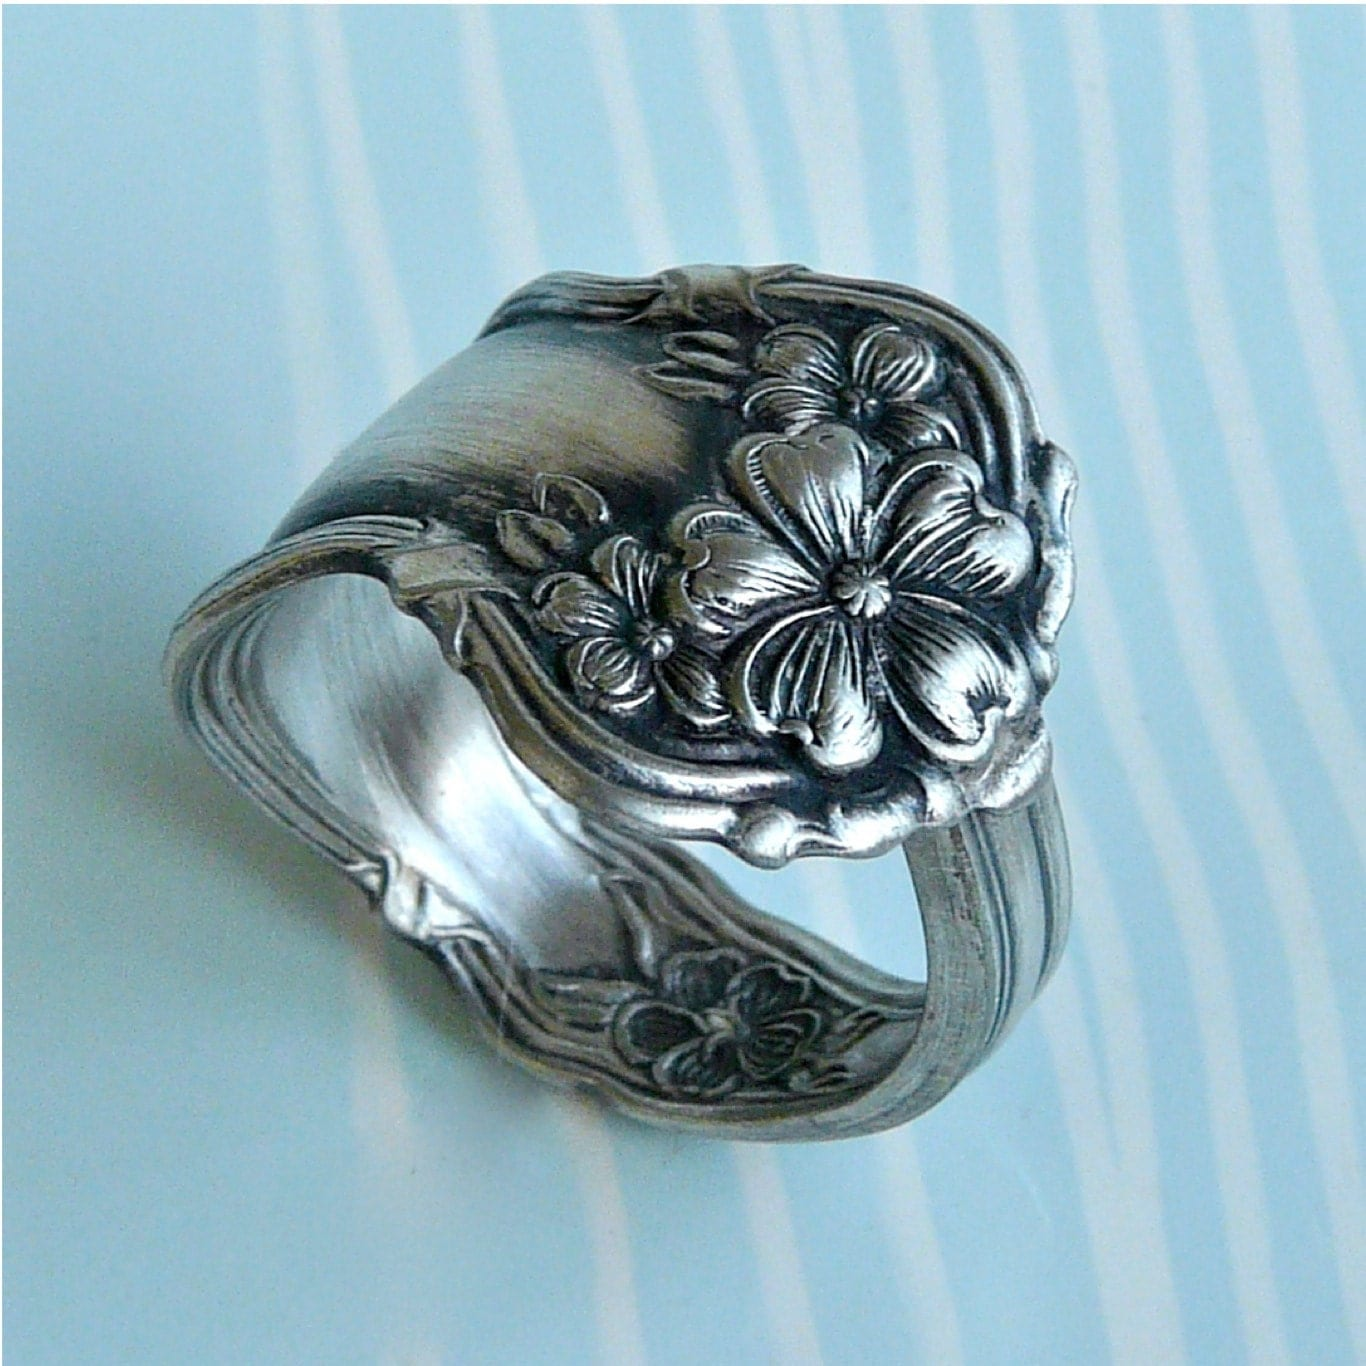 spoon ring antique silver pattern arbutus last one by